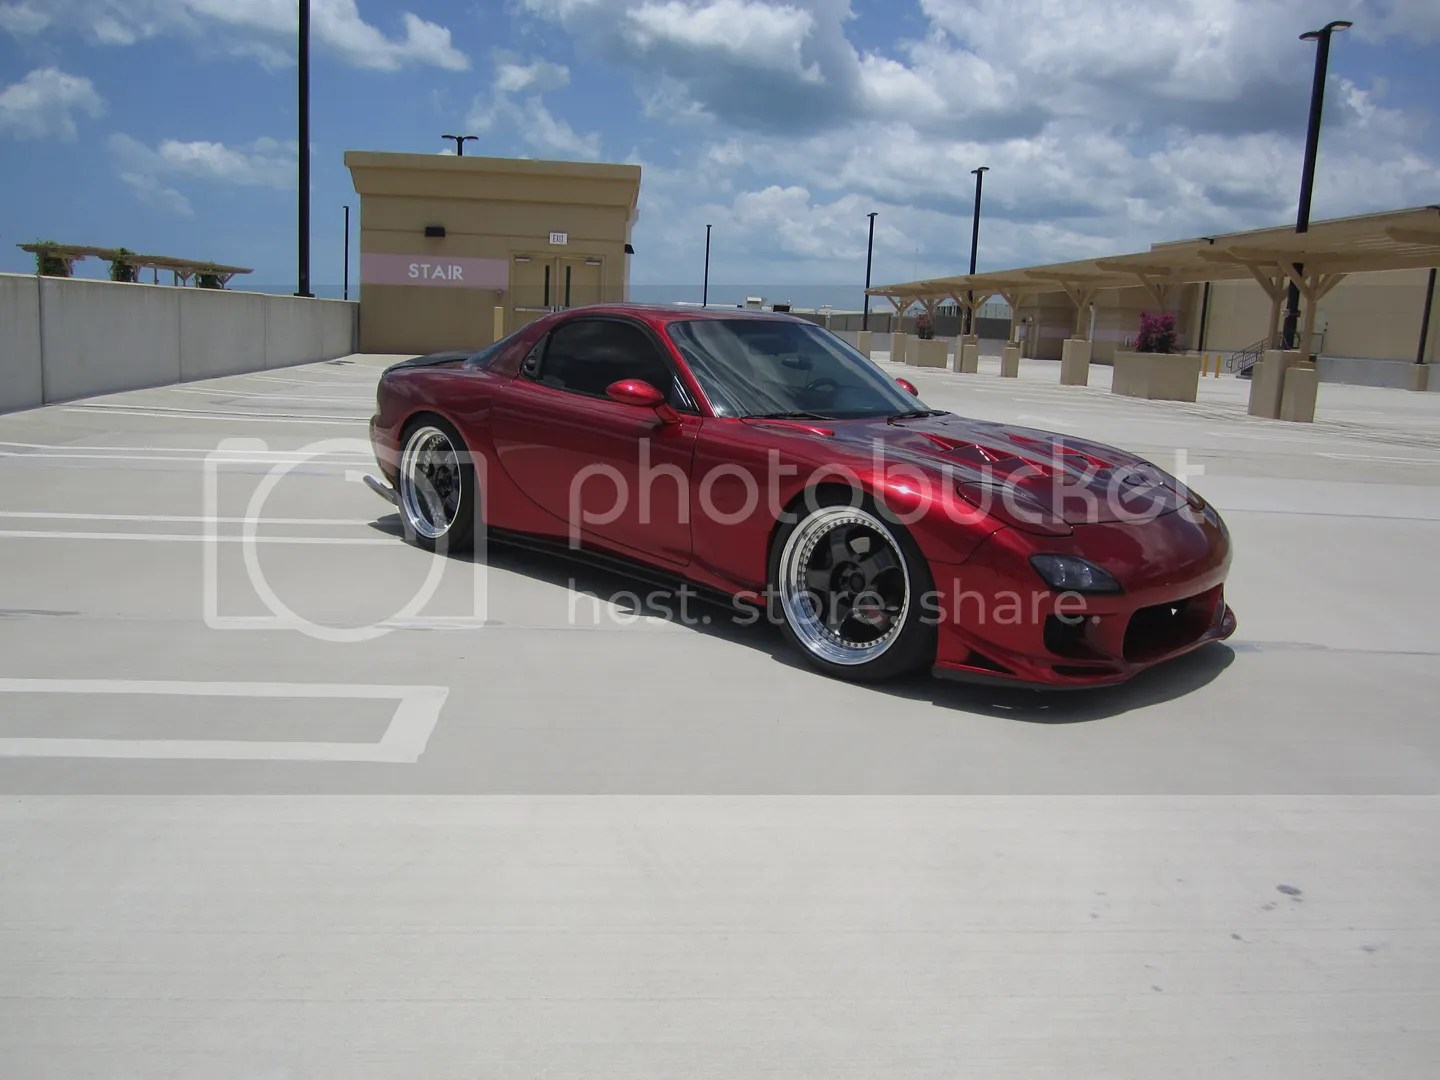 Okay, I used Red Rocket in the last post; the car had no name and was more of a burgundy. But a 1990s-era RX7, he was. Not quite a fancy as this one, but you get the idea. Photo courtesy rx7club.com